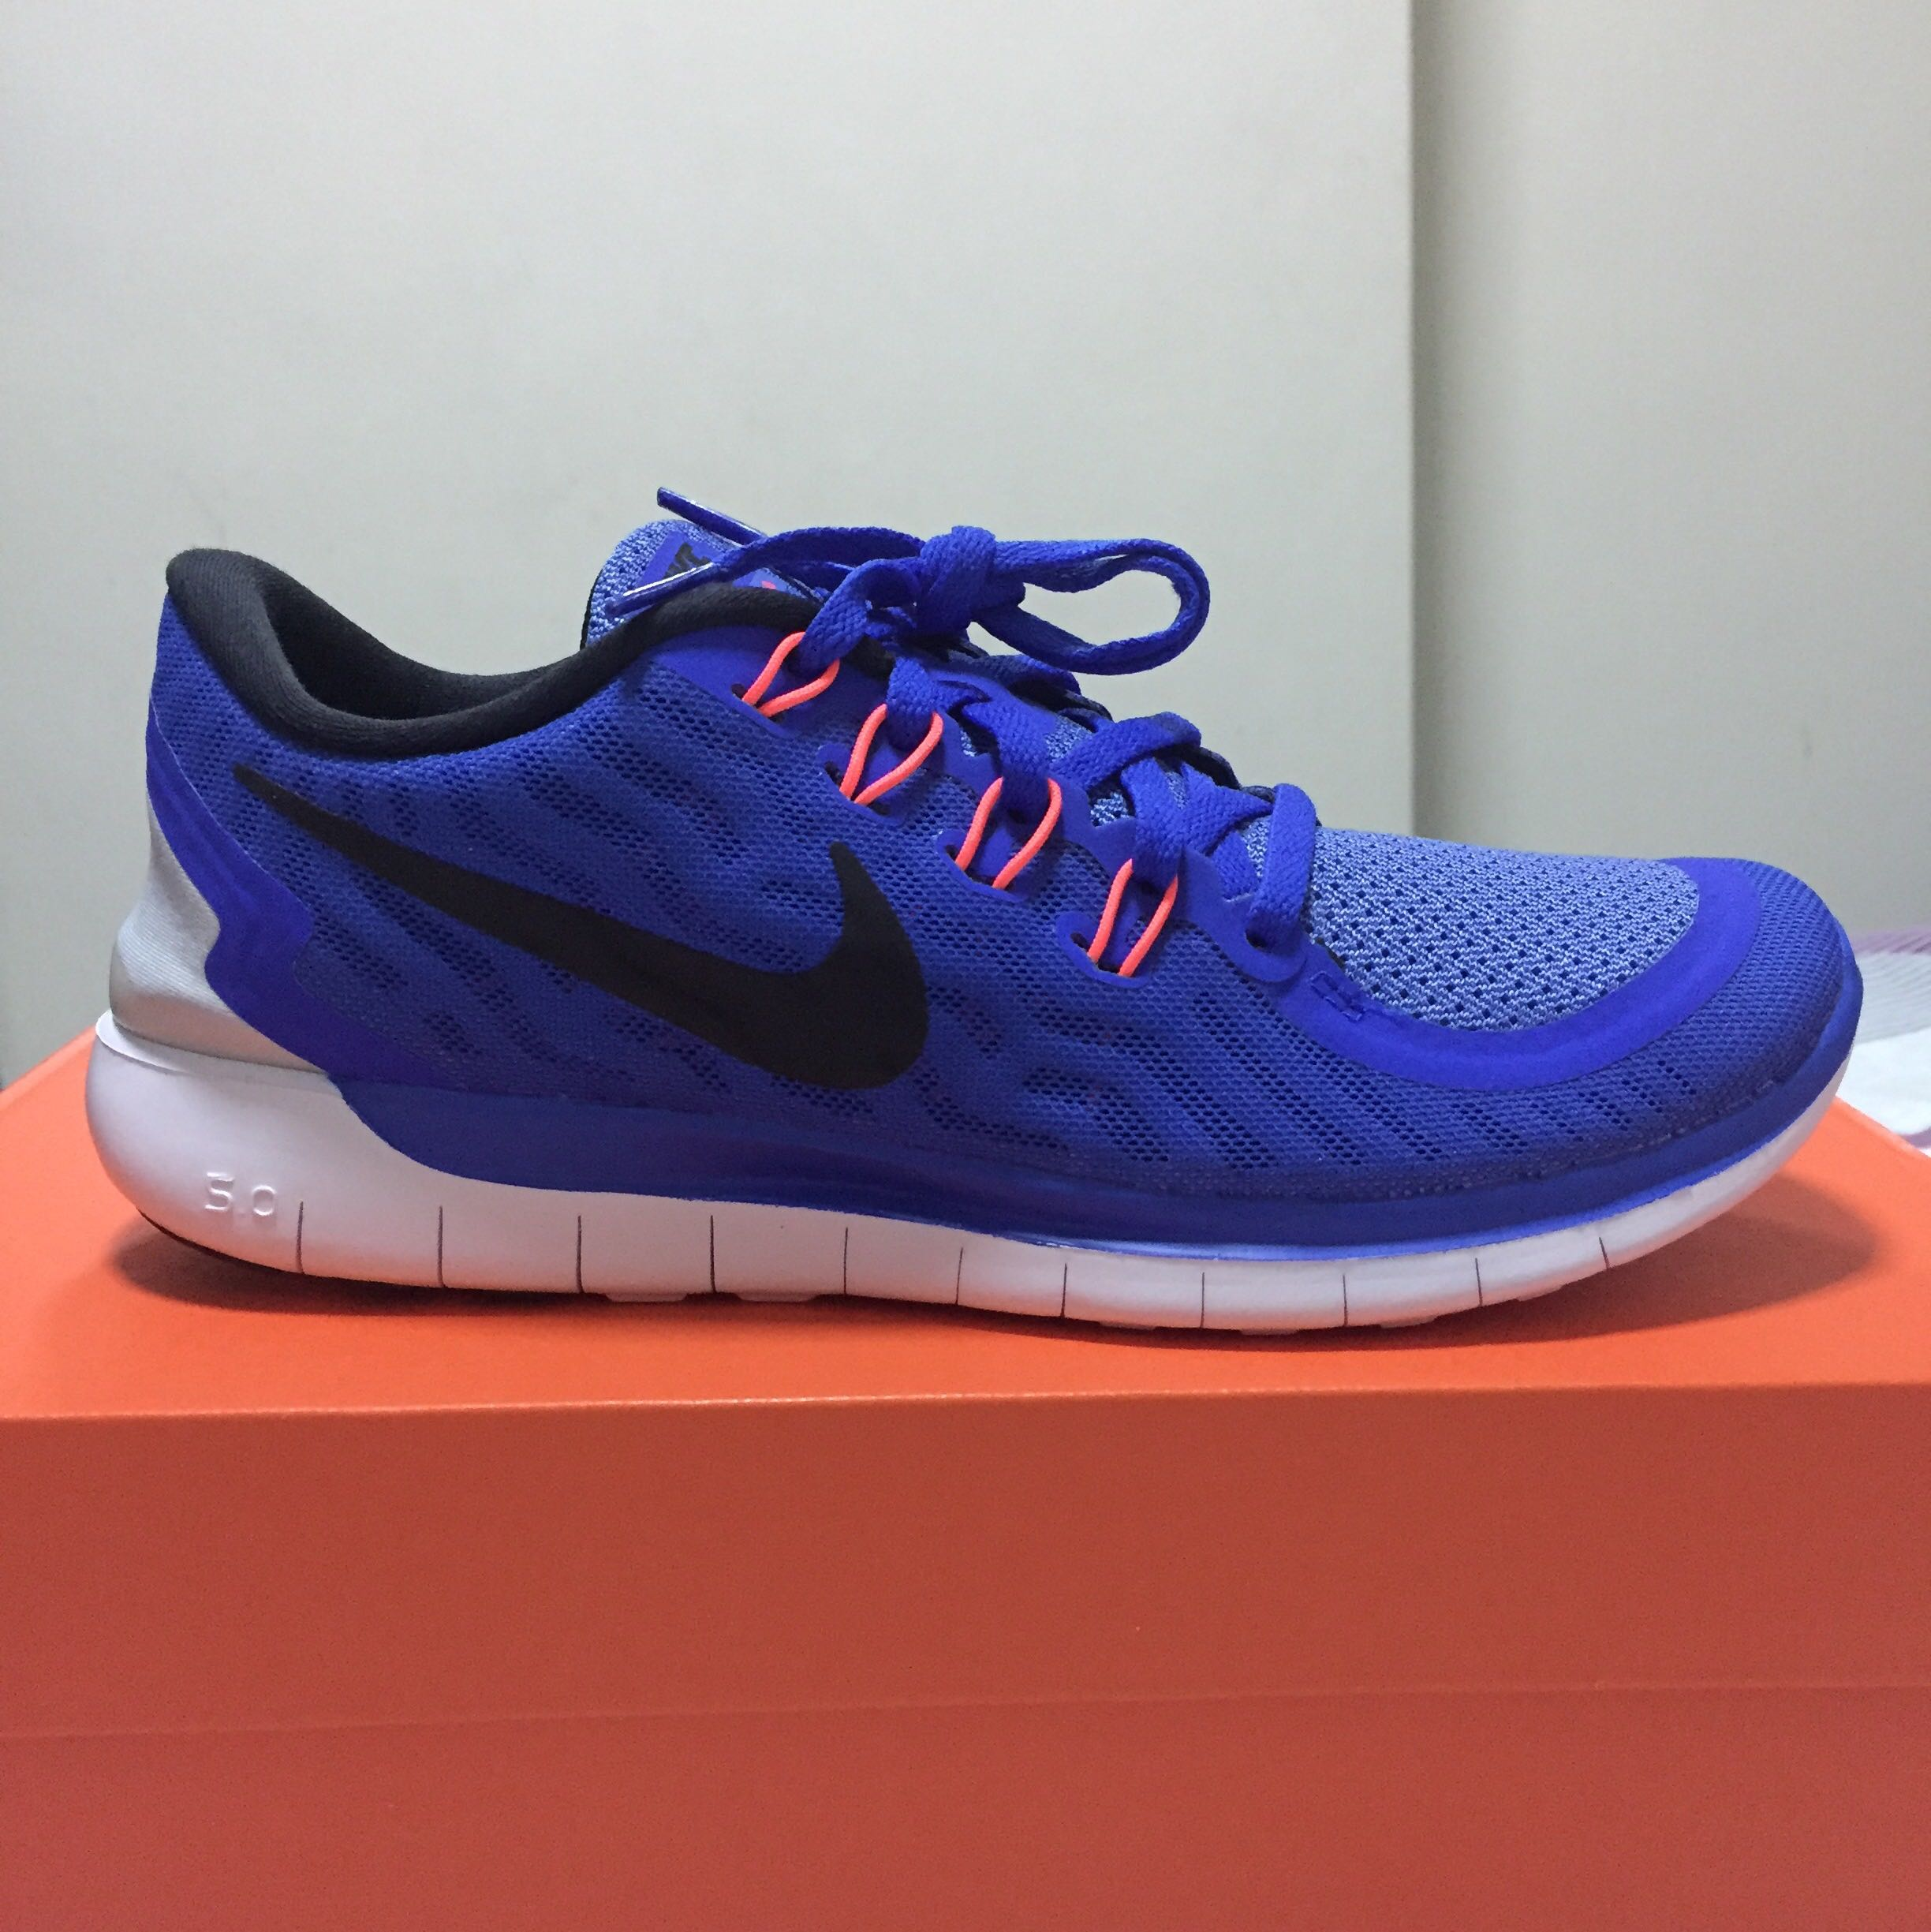 buy online bc2d2 d2f4d Nike Free 5.0, Women s Fashion, Shoes, Sneakers on Carousell